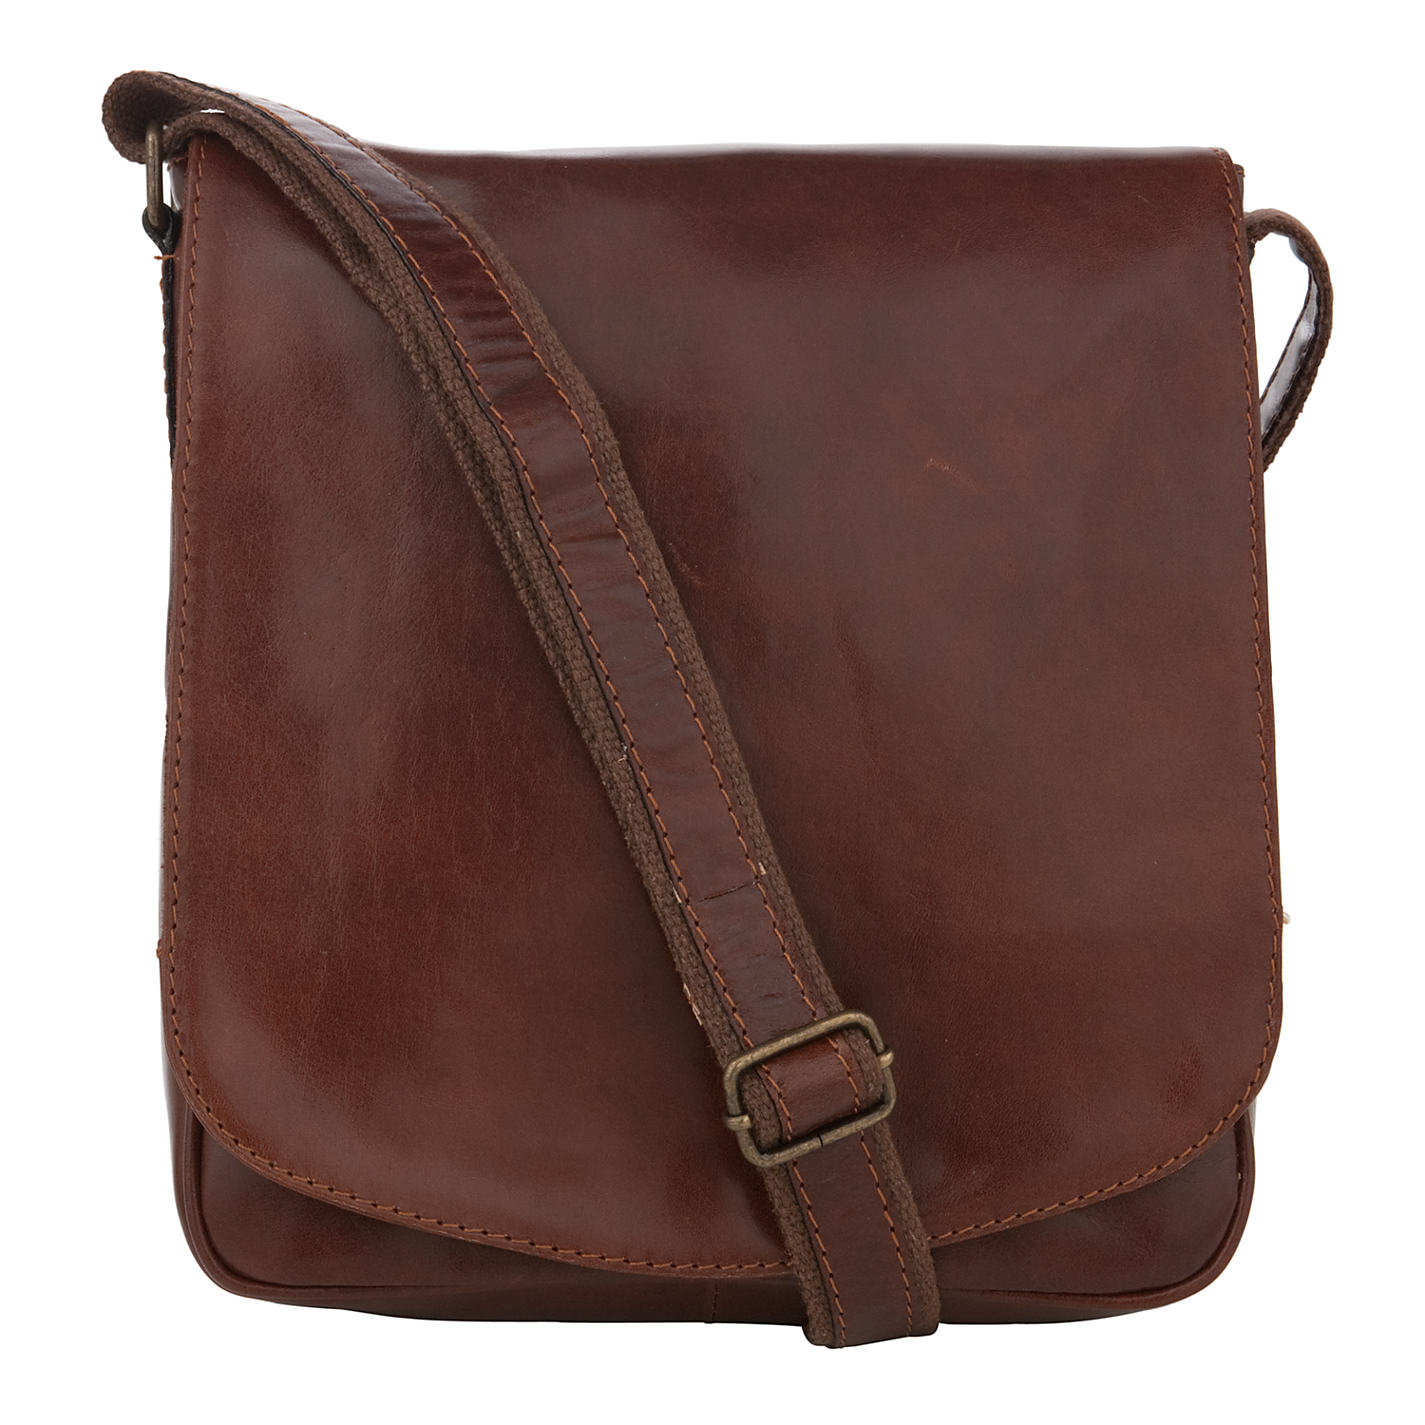 Leather Man Shoulder Bag – Shoulder Travel Bag